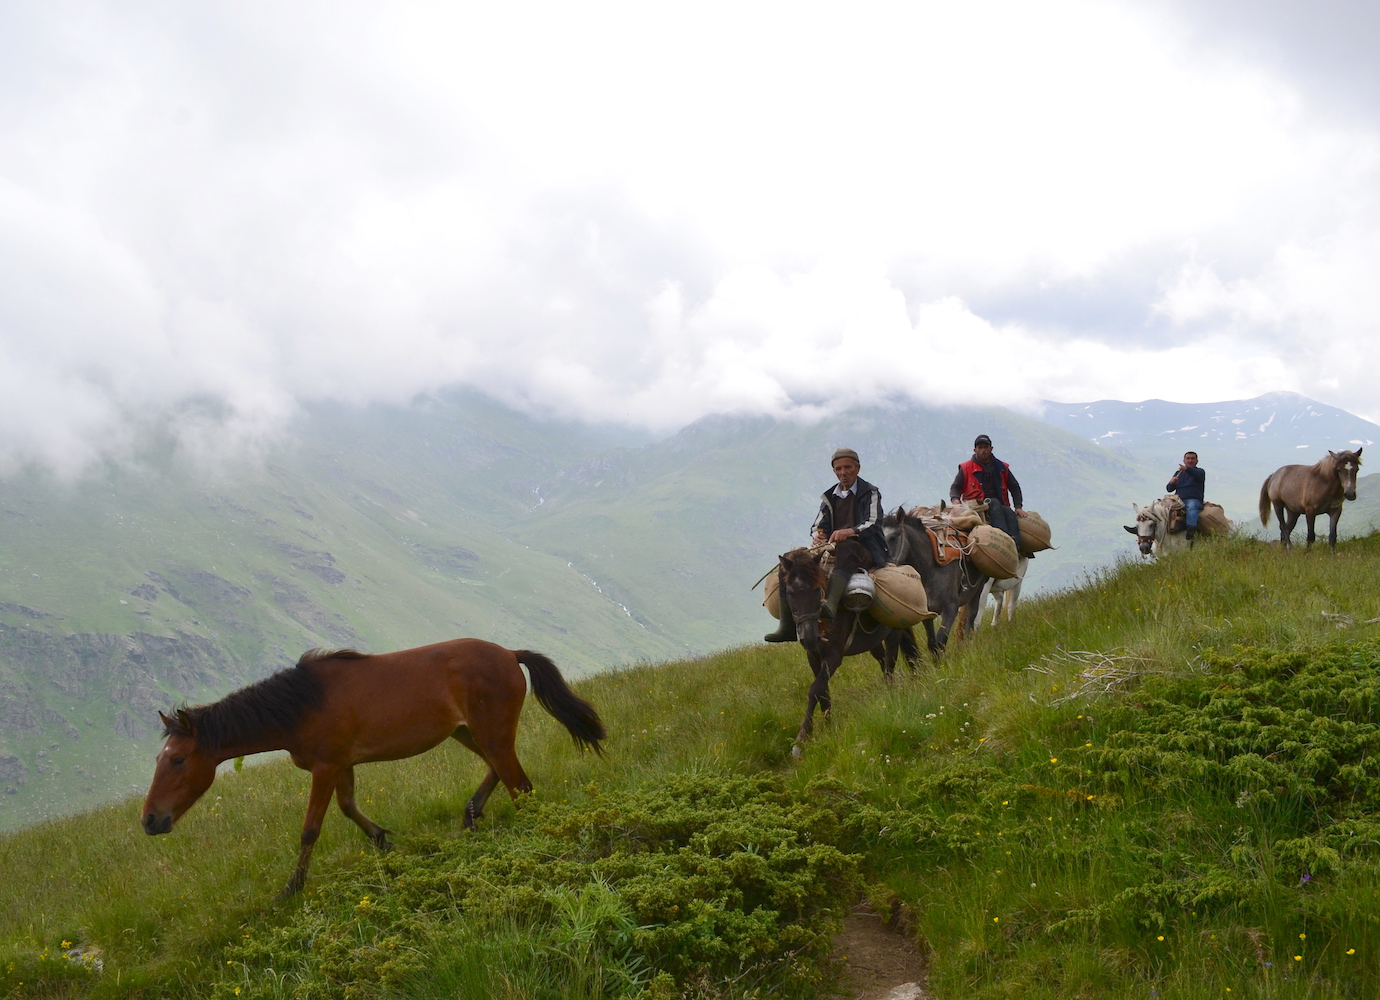 Letter from the Sharr Mountains: on Kosovo's highest peak, shepherds are keeping ancient traditions alive